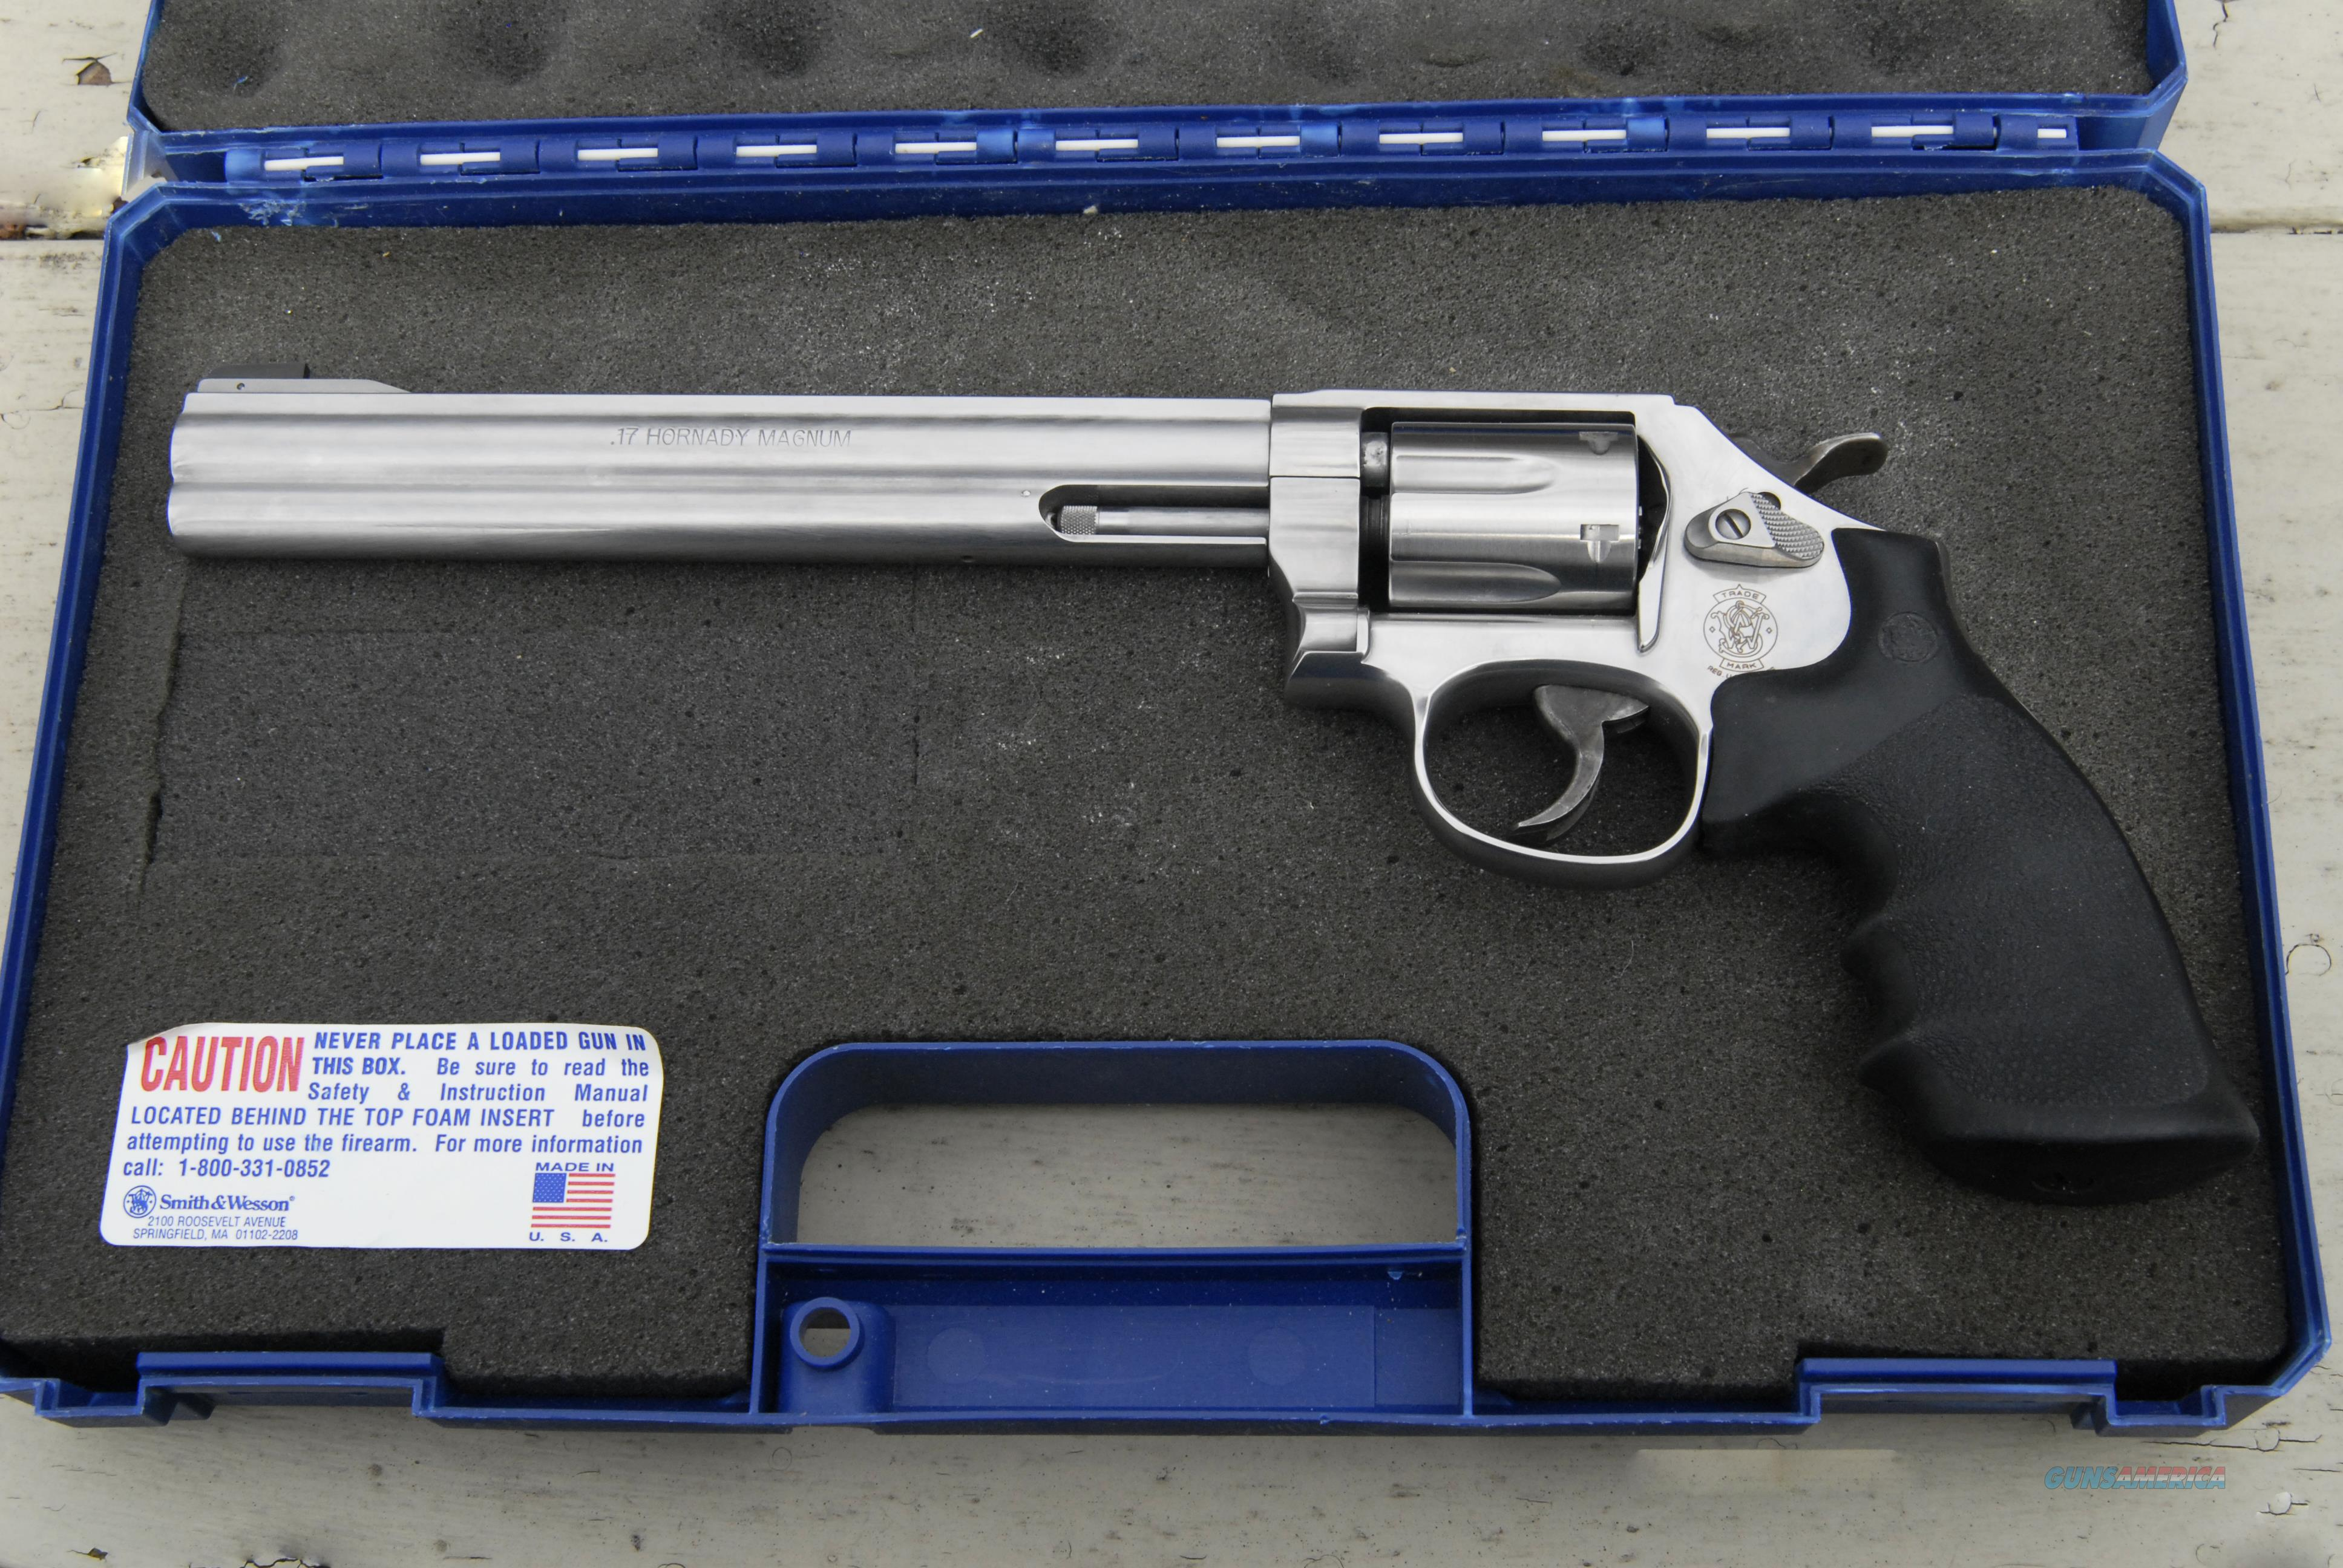 SMITH and WESSON .17HMR STAINLESS  Guns > Pistols > Smith & Wesson Revolvers > Full Frame Revolver